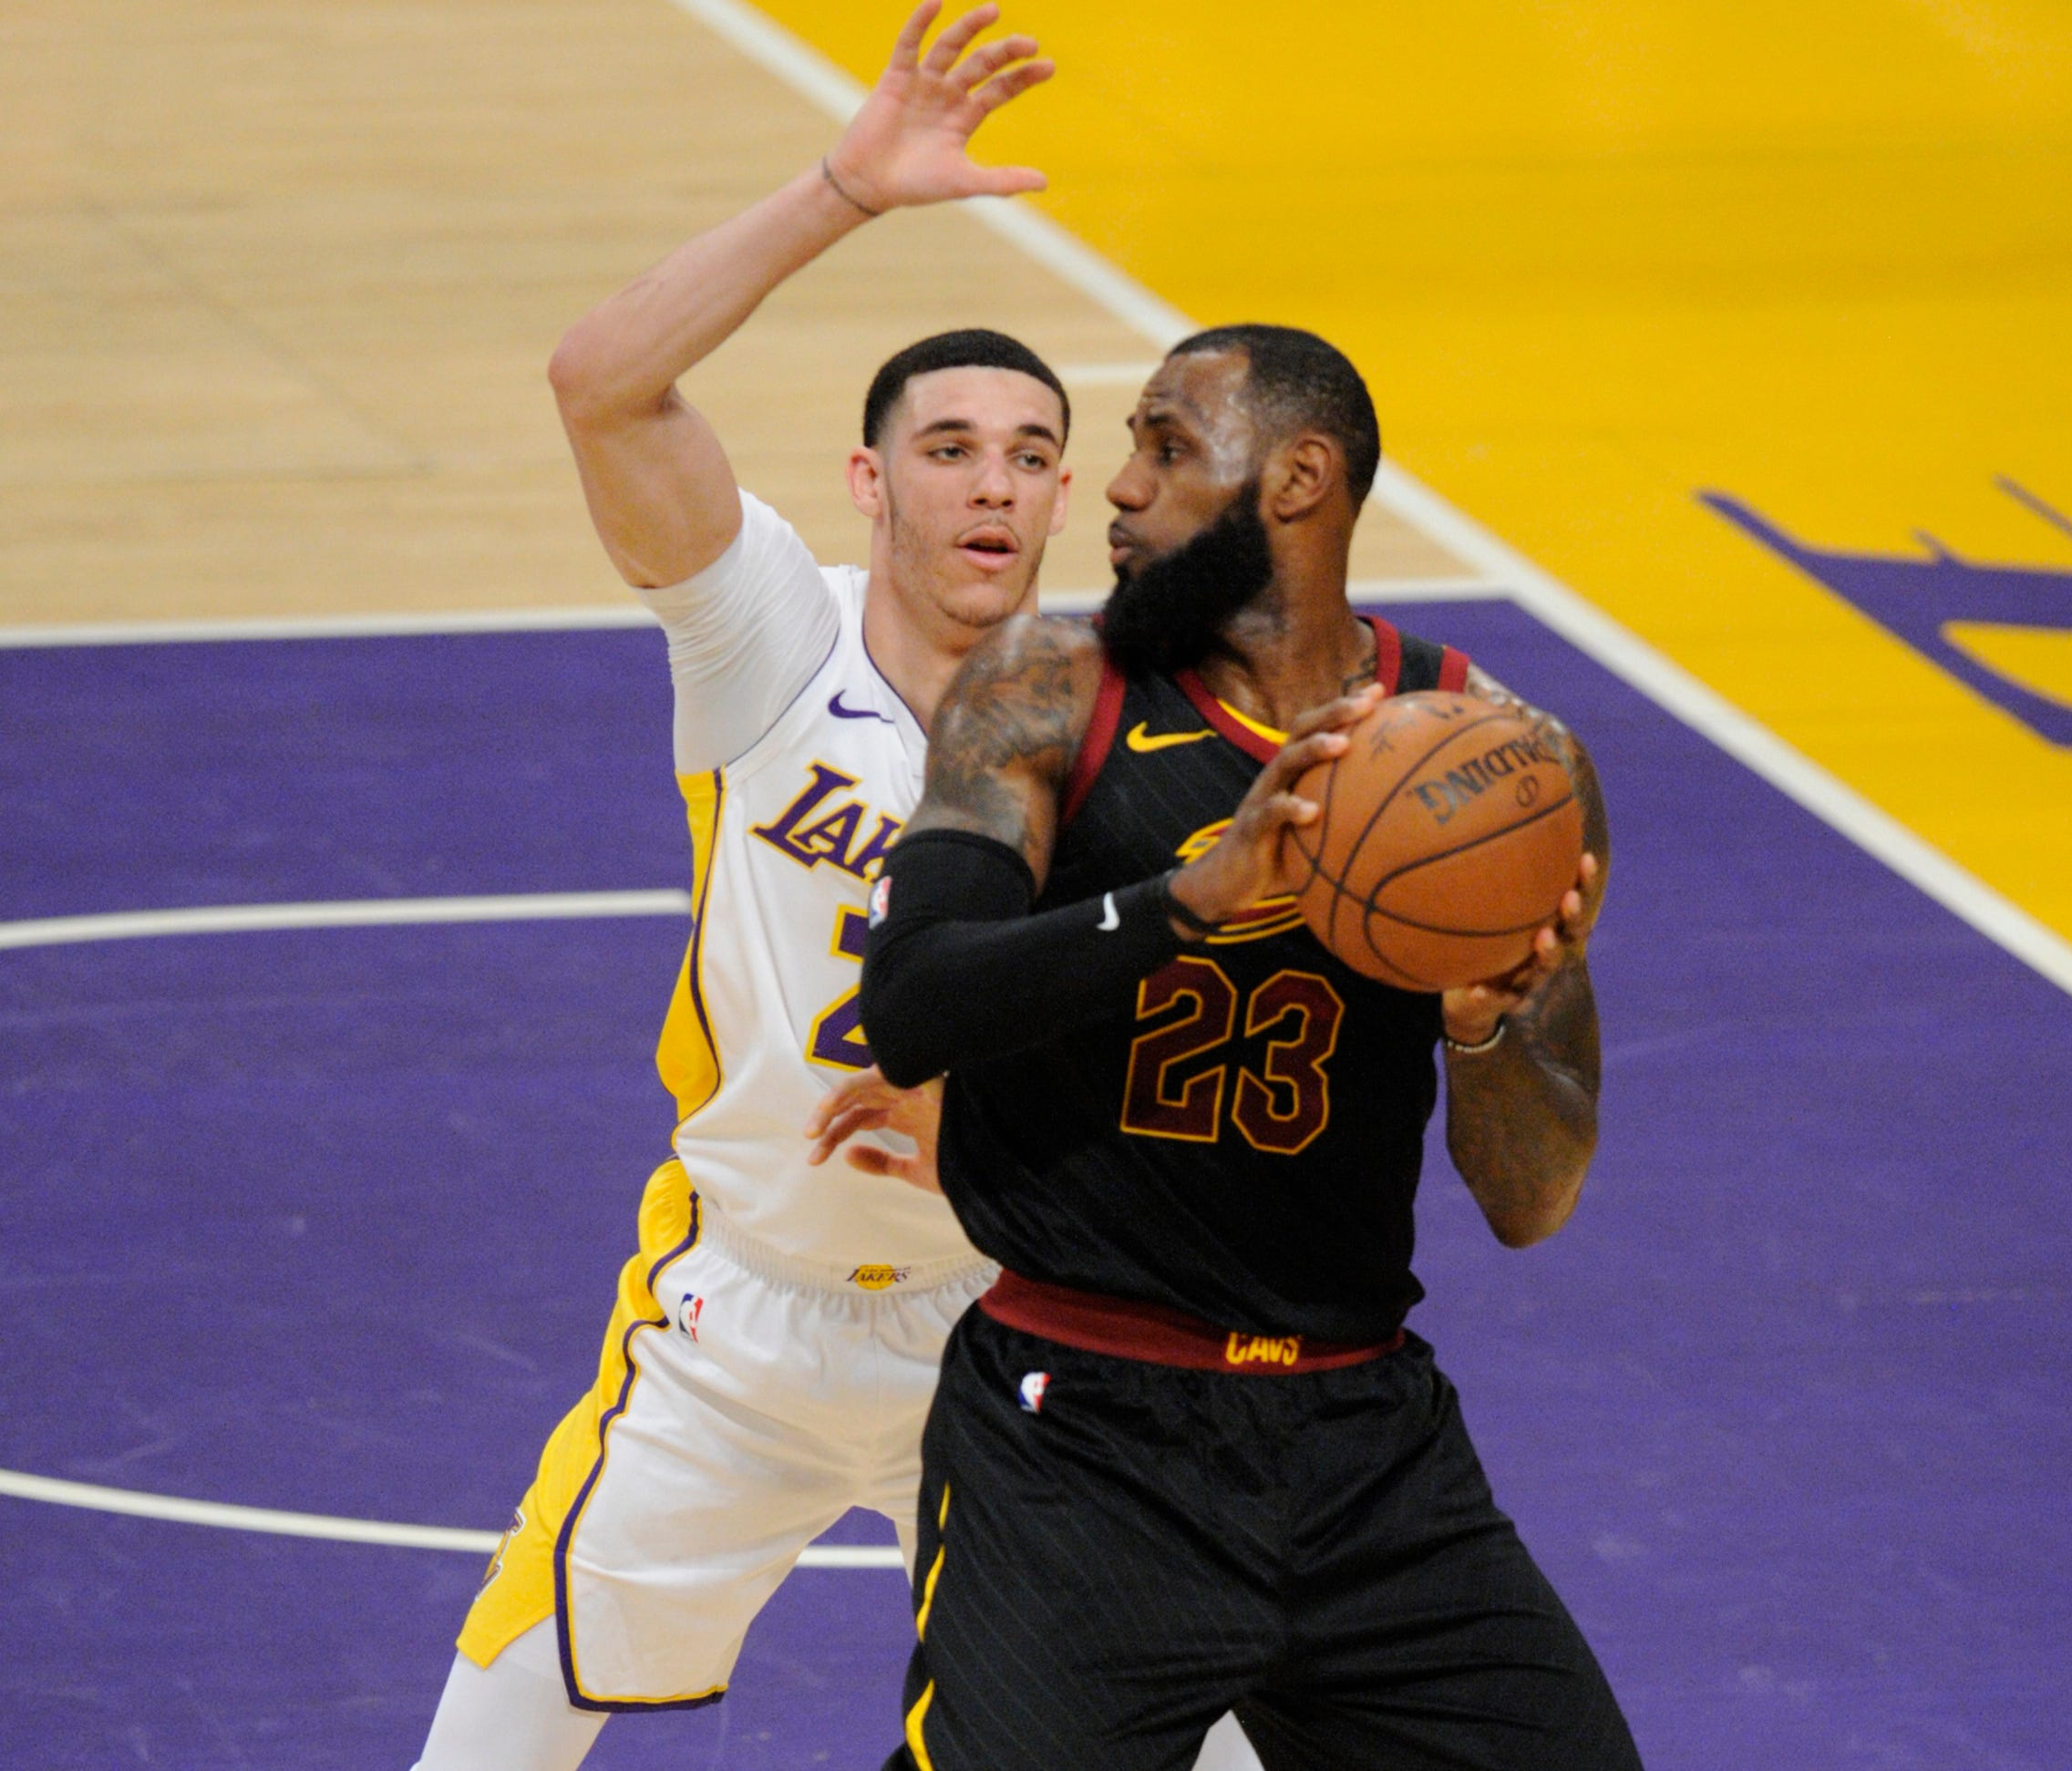 March 11, 2018; Los Angeles, CA, USA; Cleveland Cavaliers forward LeBron James (23) moves the ball against Los Angeles Lakers guard Lonzo Ball (2) during the first half at Staples Center. Mandatory Credit: Gary A. Vasquez-USA TODAY Sports